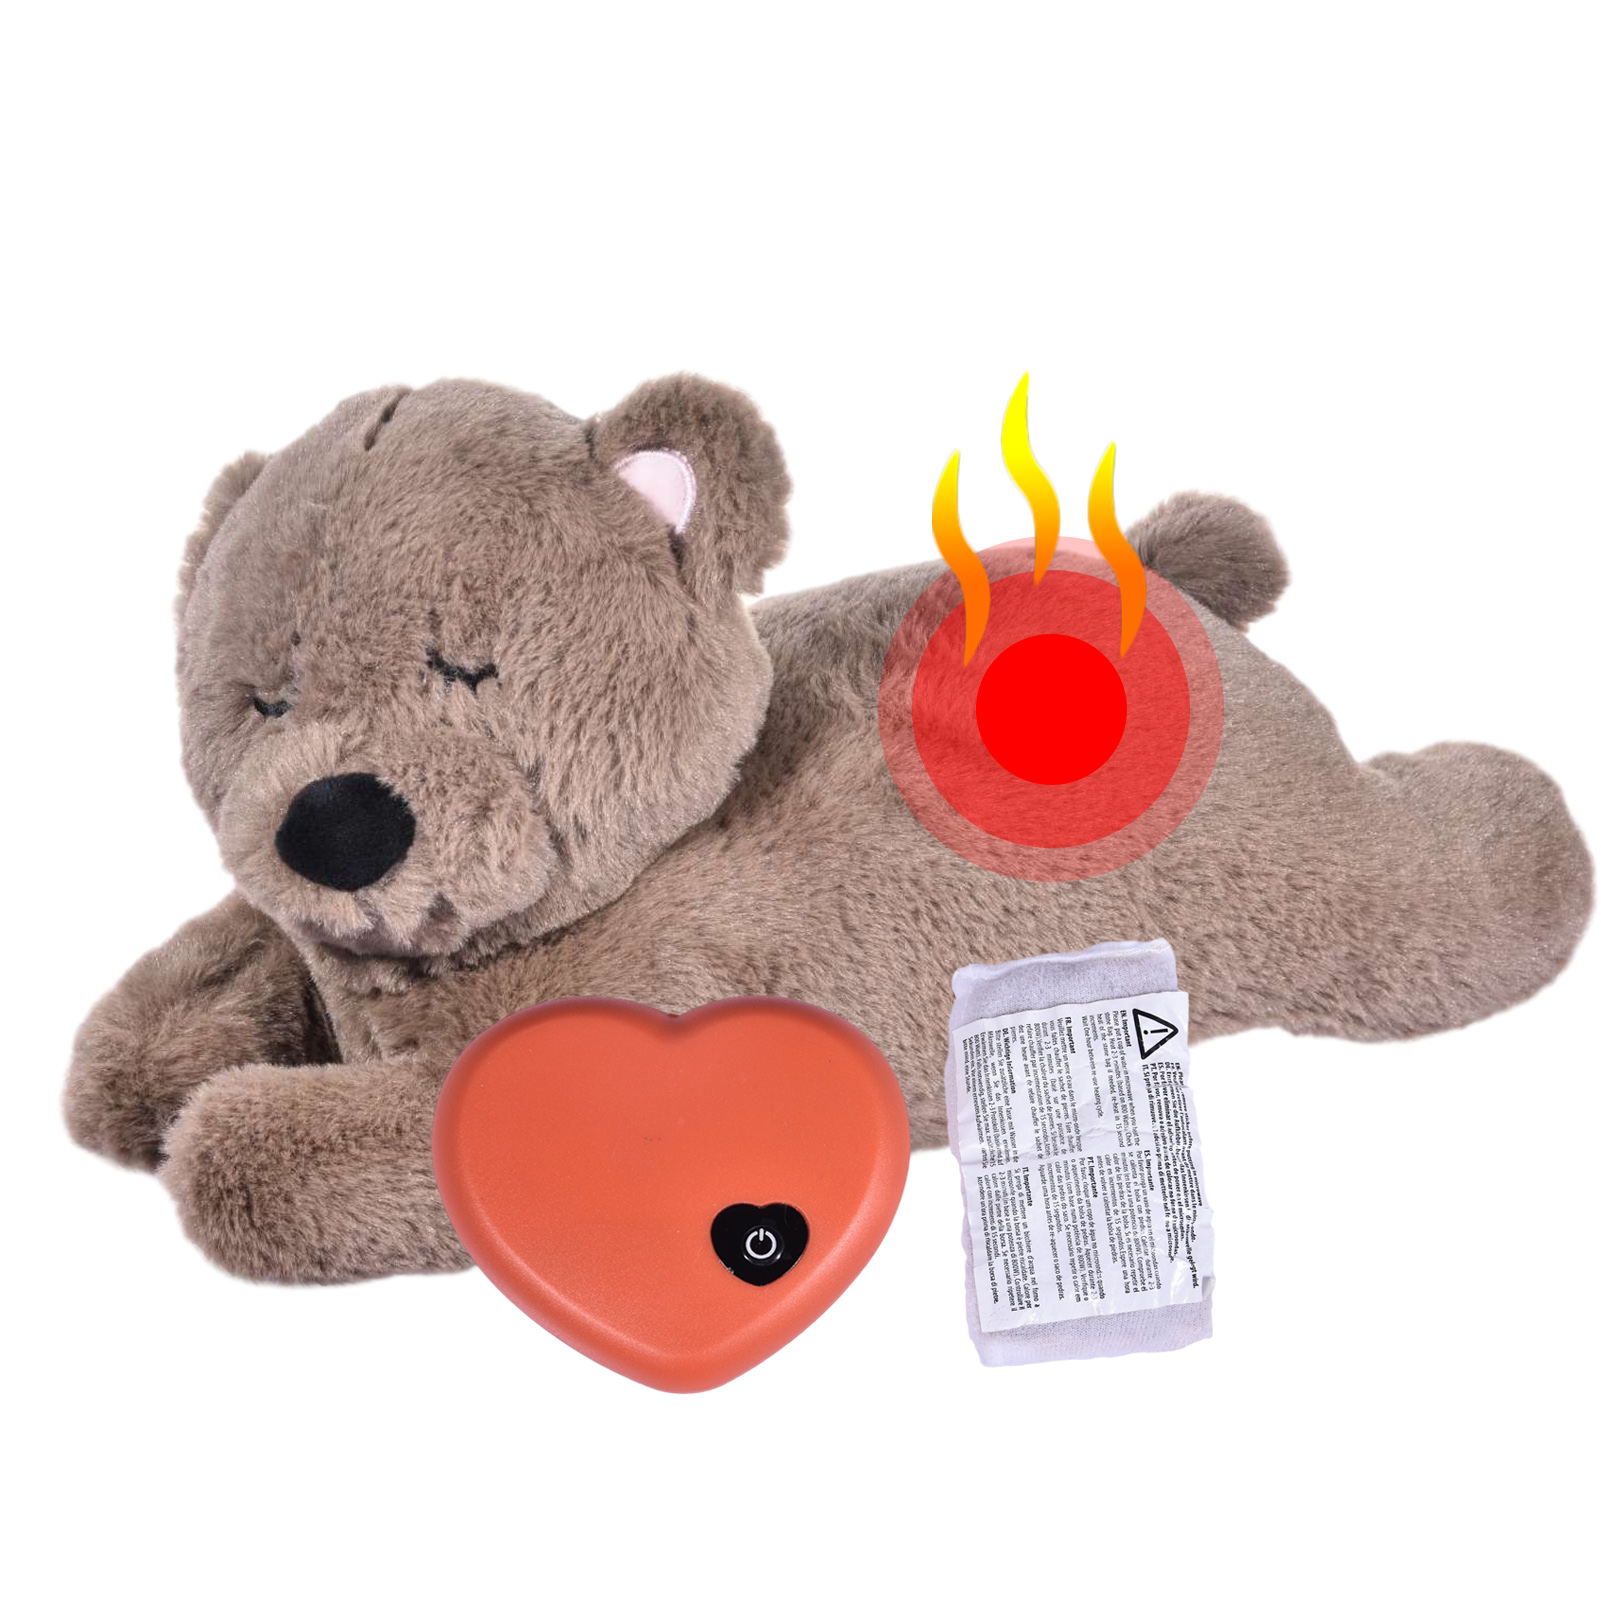 Dog Plush Toy Bear Heartbeat Toy Pet Heating Plush Toy Comfortable Behavioral Training Aid Toy Heart Beat Plush Doll Sleep for Smart Dogs Cats